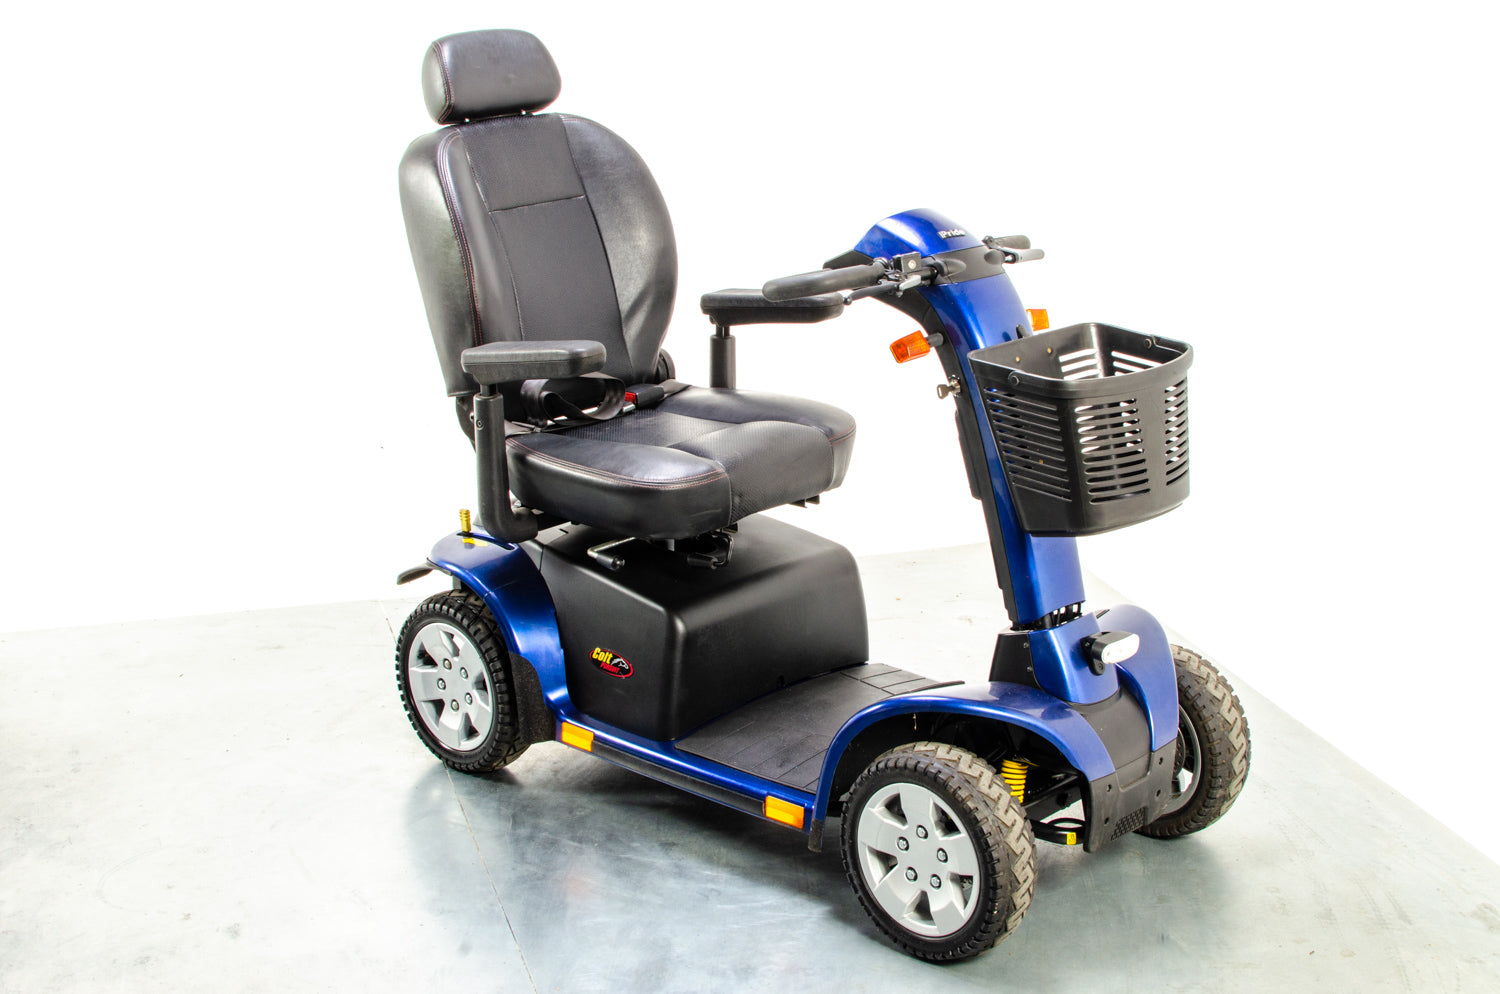 Pride Colt Pursuit Used Mobility Scooter 8mph Large All-Terrain Transportable